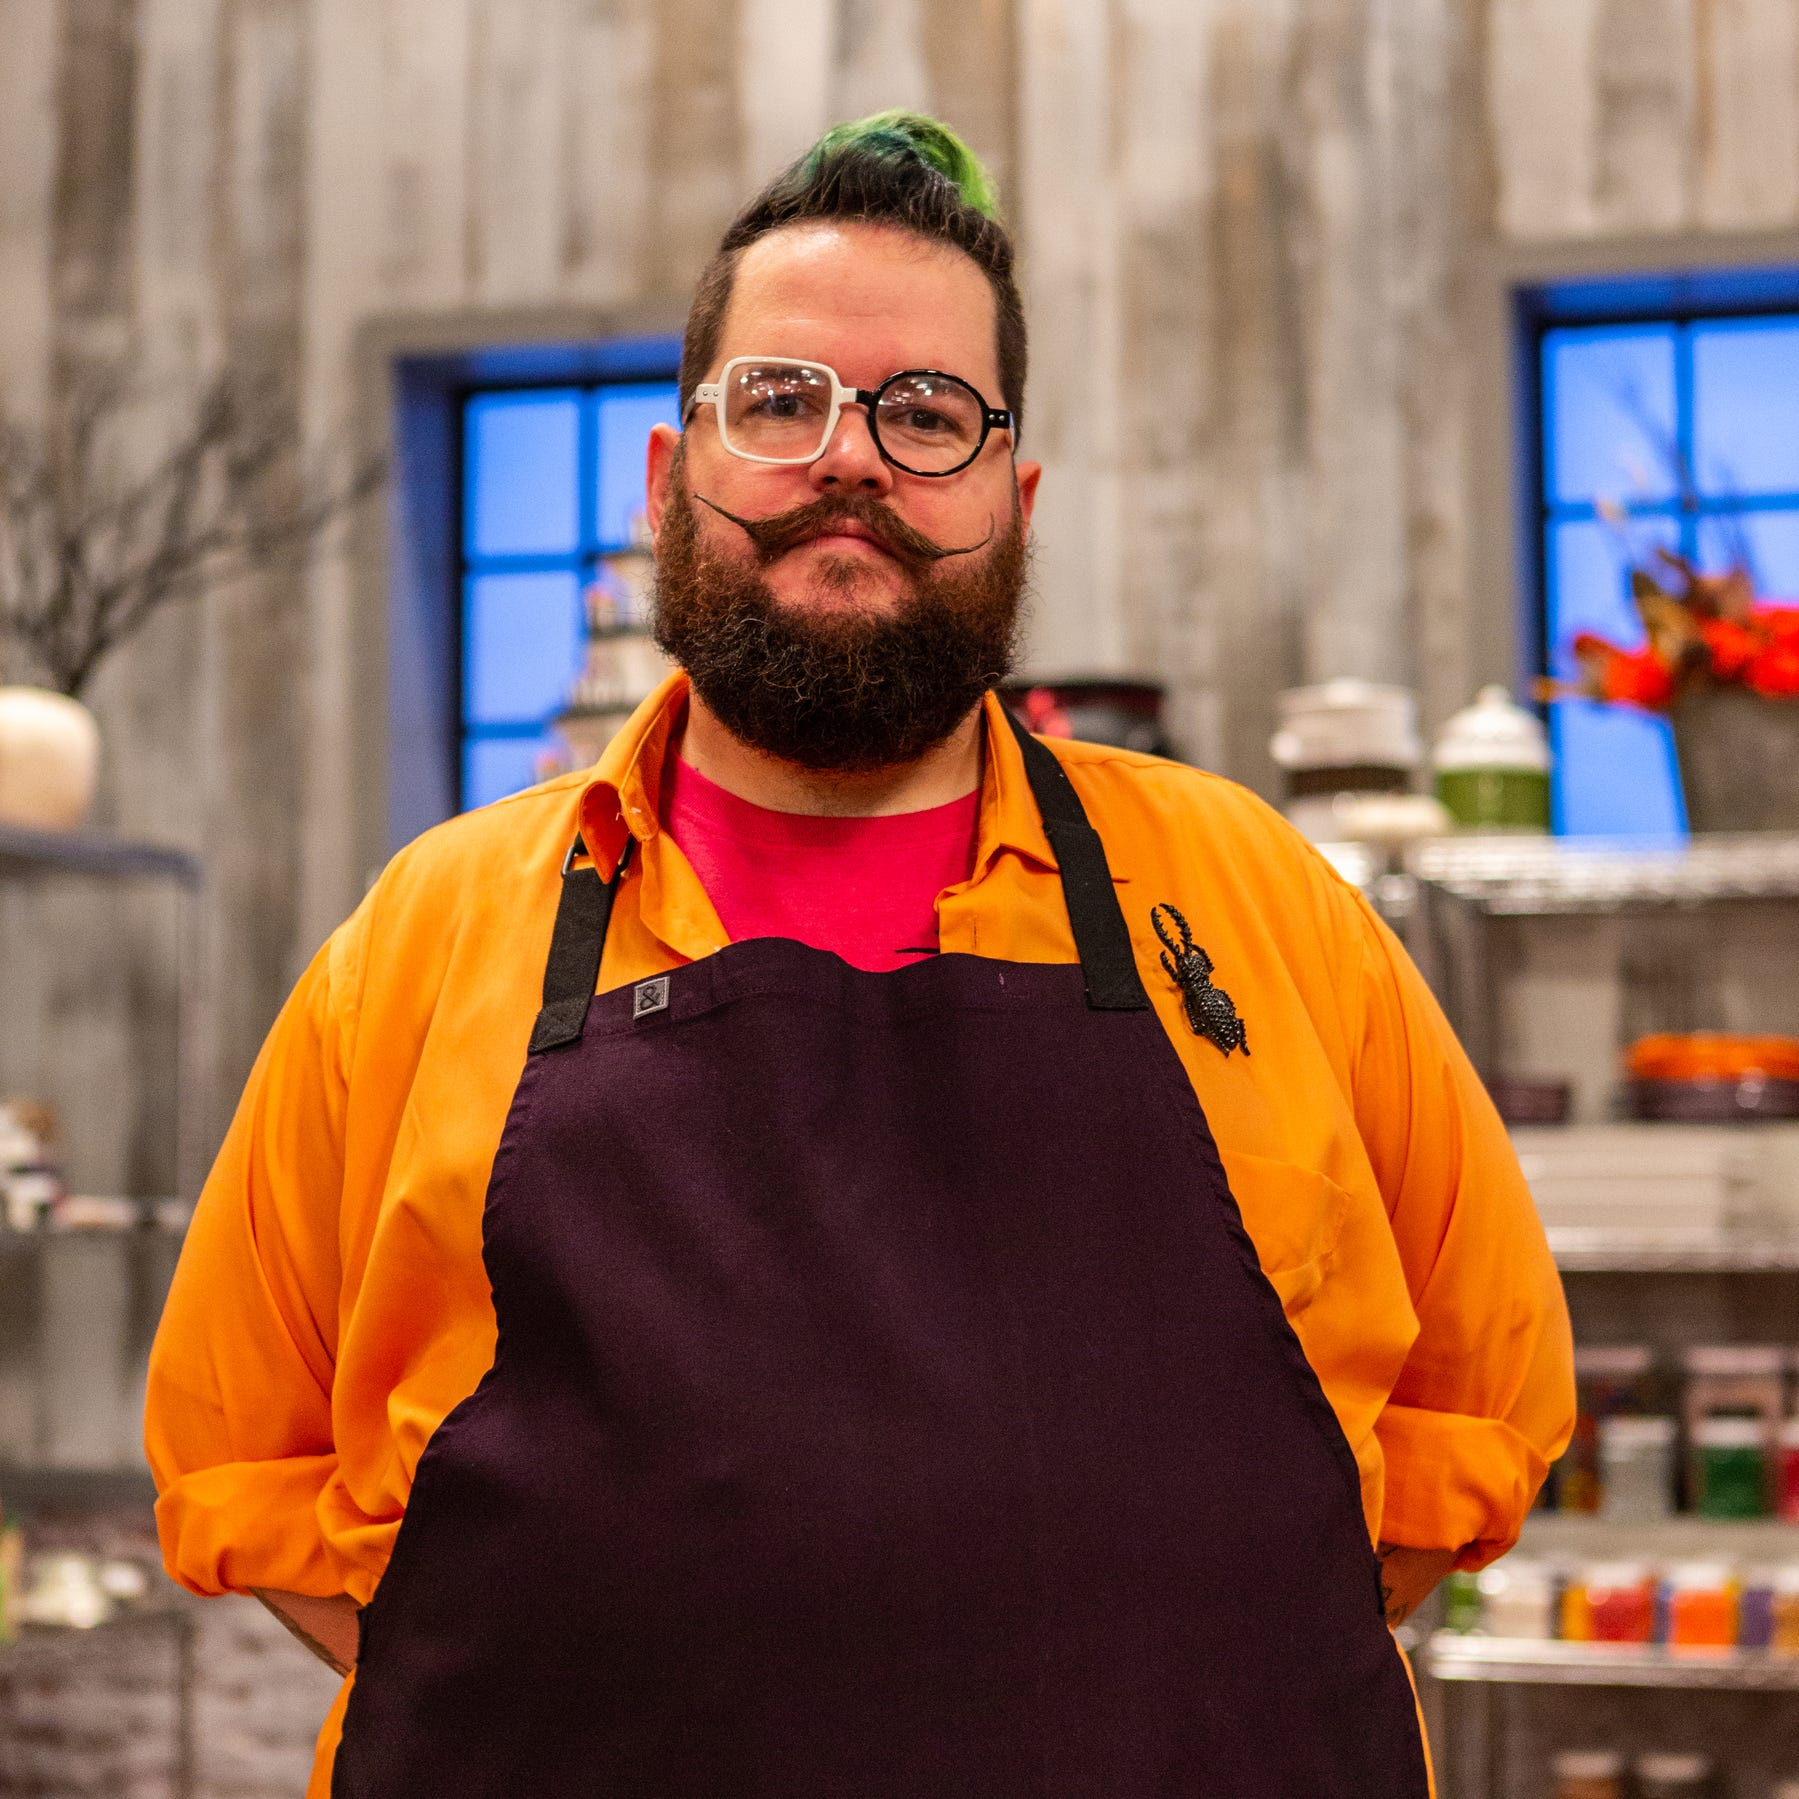 This Des Moines baker is competing tonight on spooky Halloween competition on Food Network